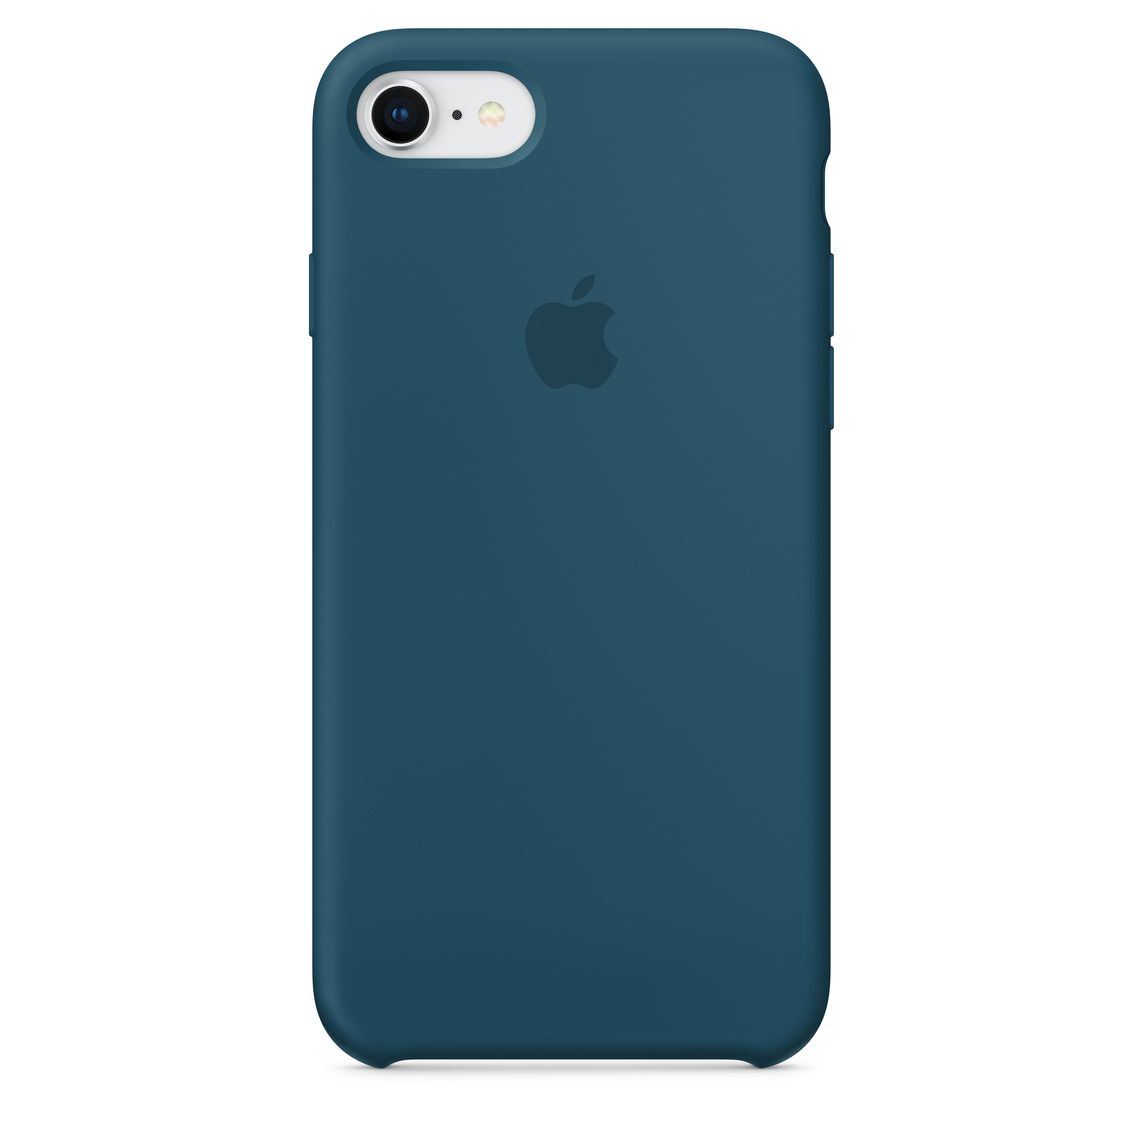 buy online 8c8d3 cb5f8 iPhone 8 / 7 Silicone Case - Cosmos Blue